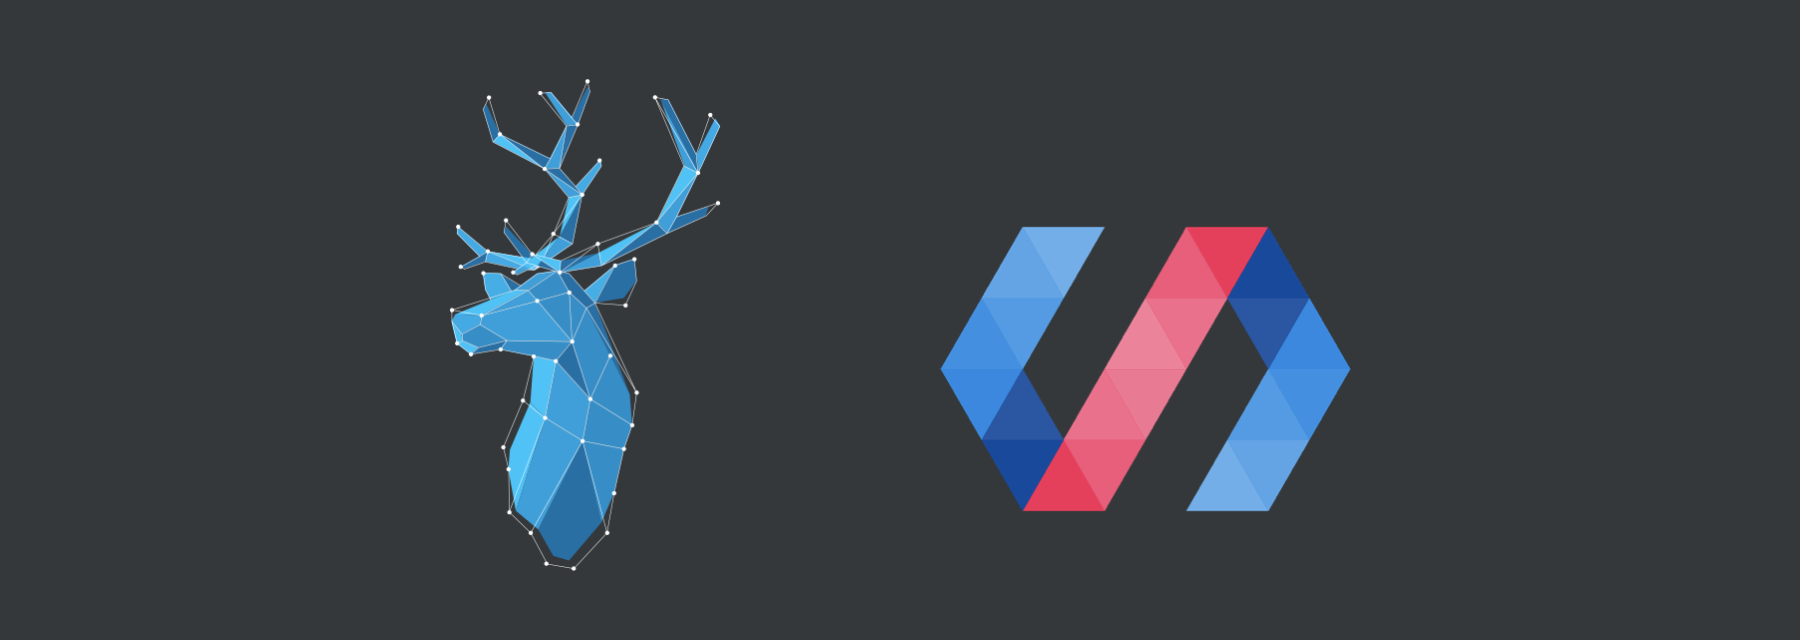 Vaadin Elements 2 Polymer 2 support